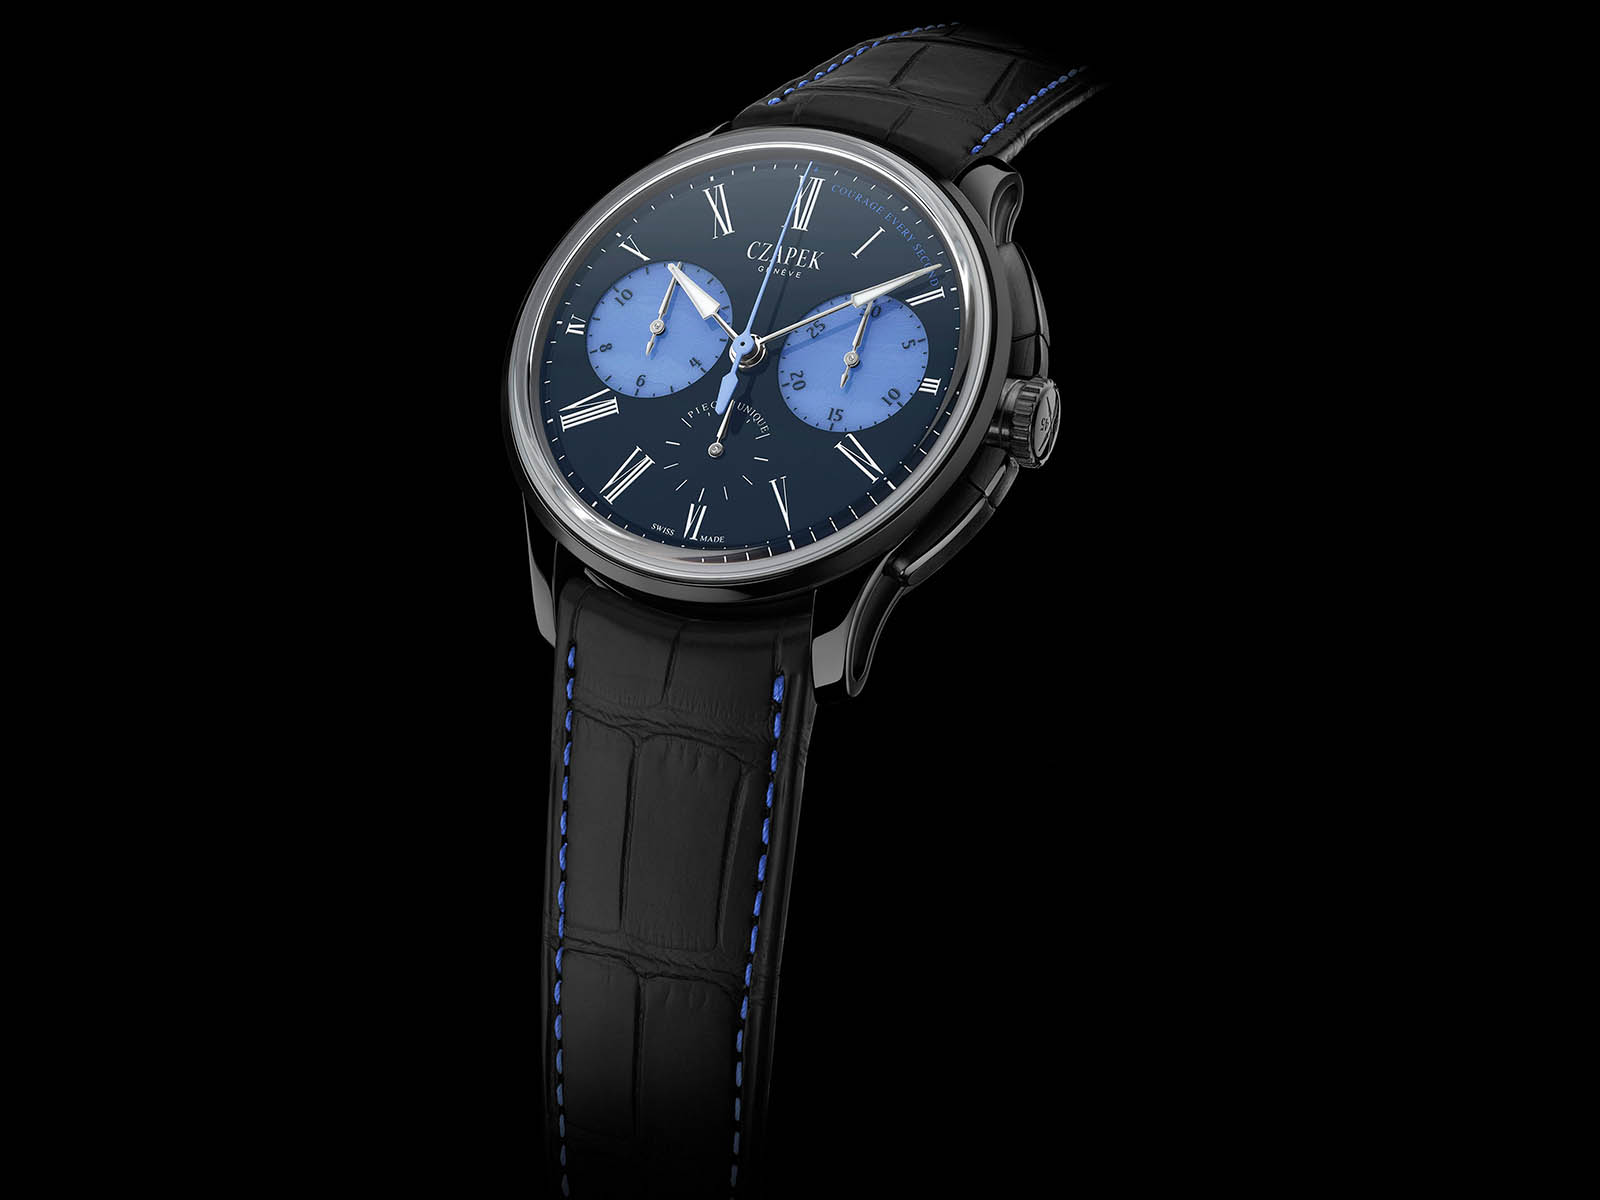 czapek-faubourg-de-cracovie-only-watch-2019.jpg